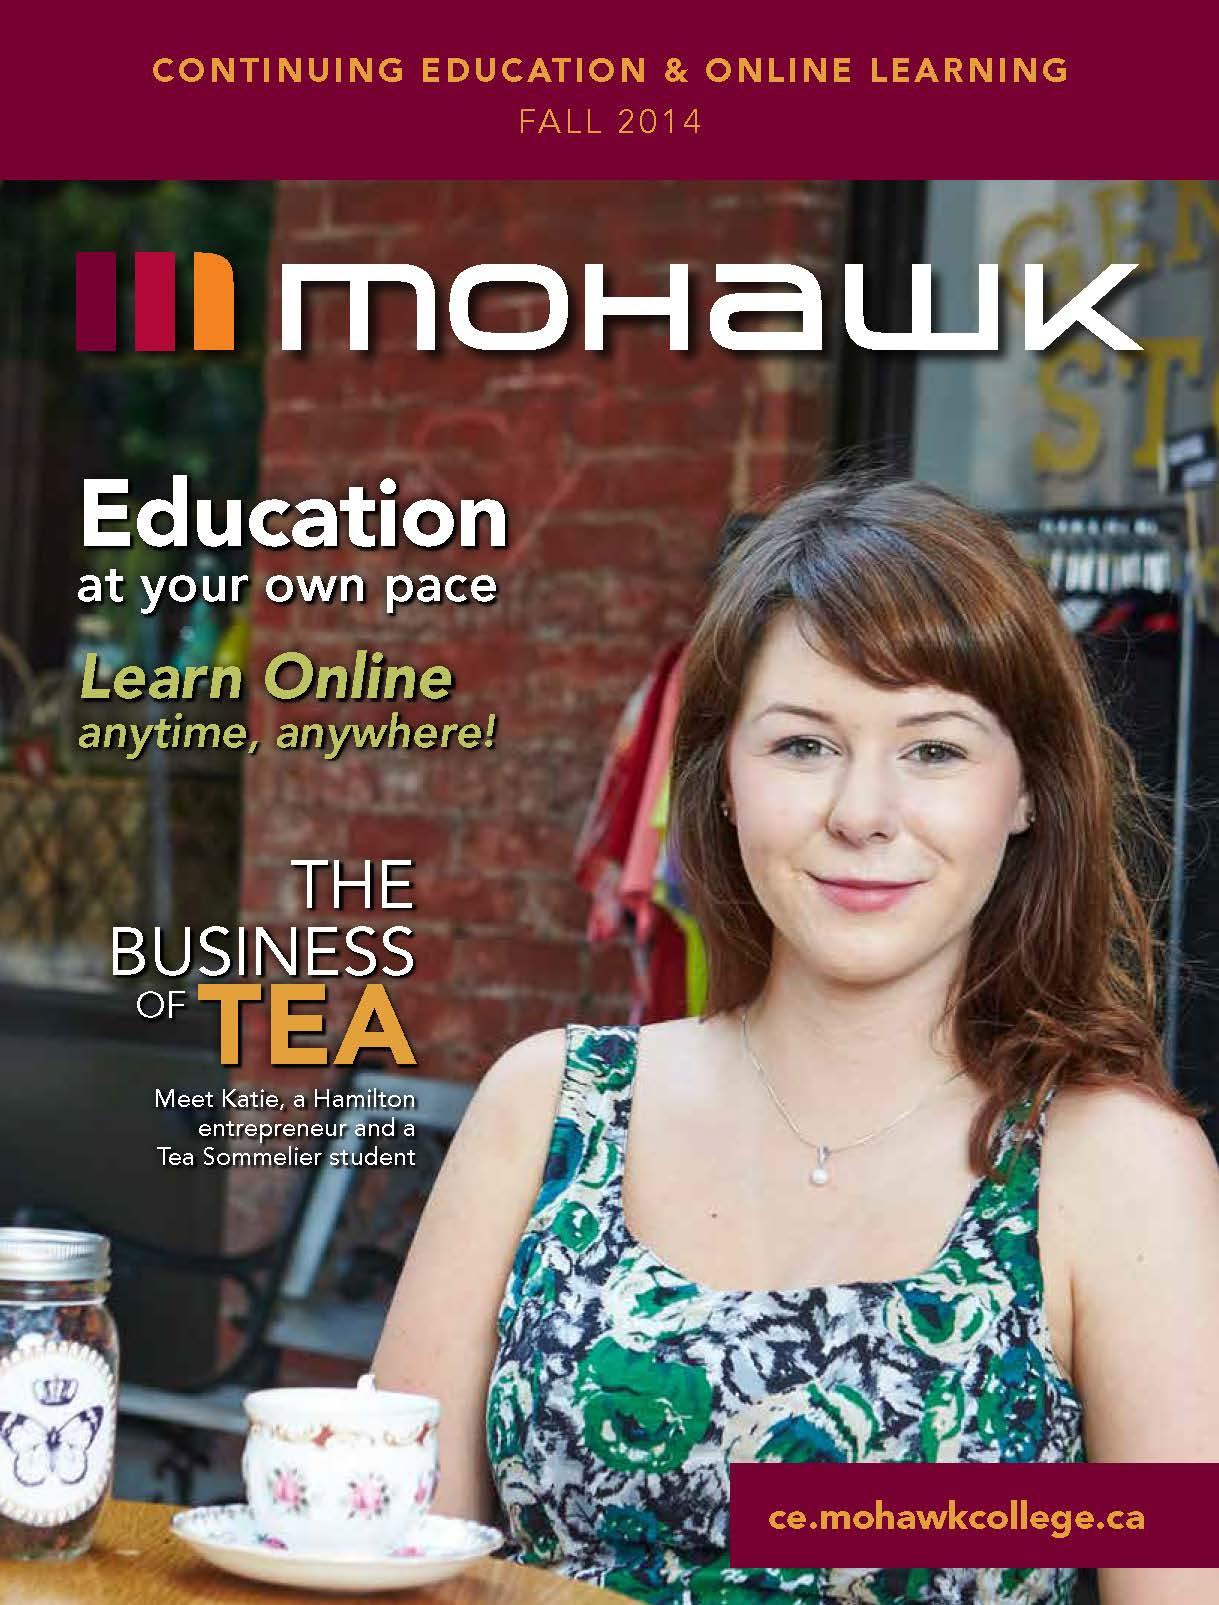 Mohawk College Continuing Education Catalogue Cover Fall 2014